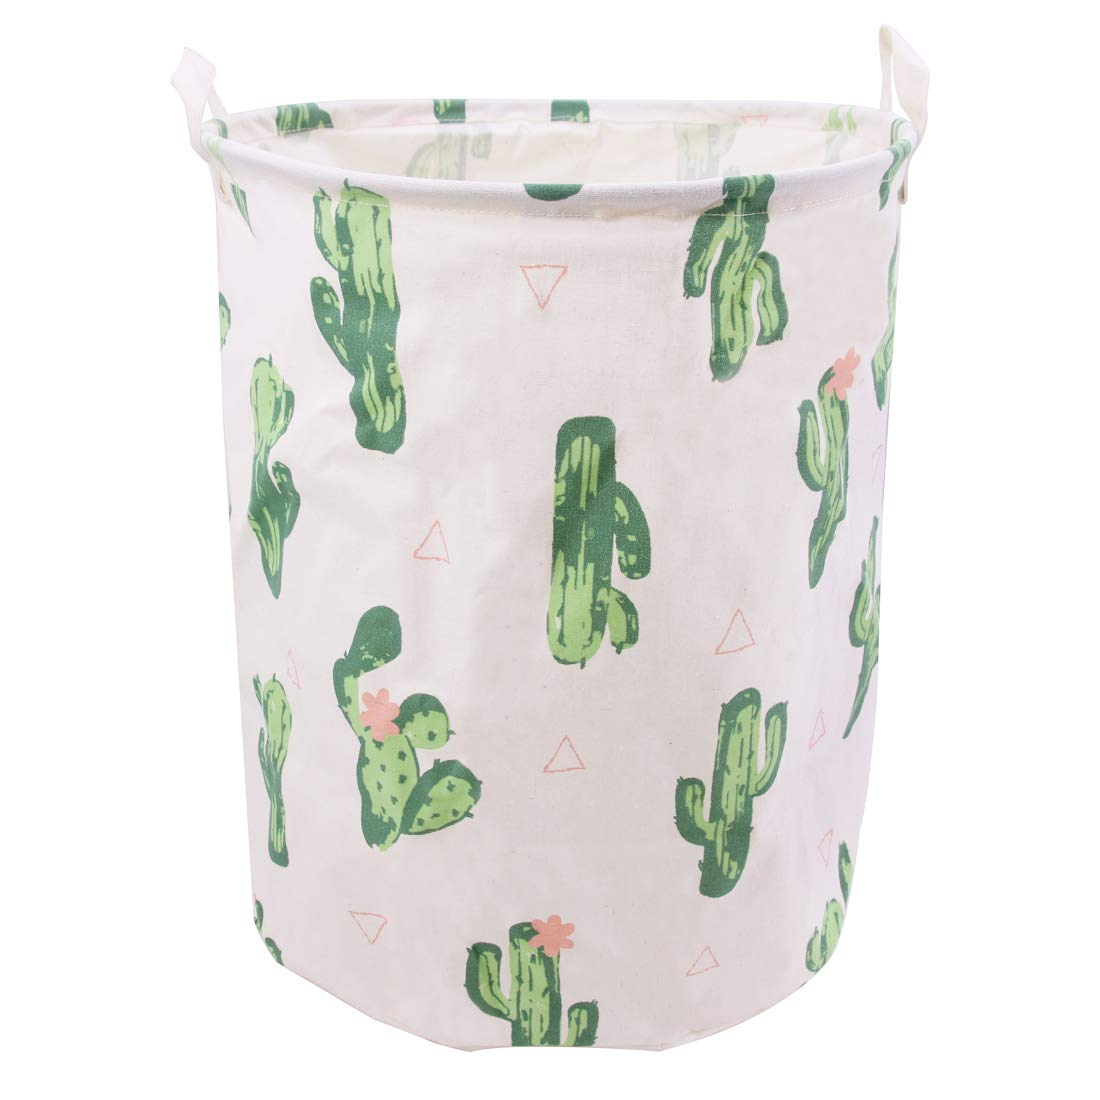 Jacone Large Laundry Basket Canvas Fabric Waterproof Cylindric Laundry Hamper Storage Basket with Handles, Decorative and Convenient for Kids Bedroom (Cactus)